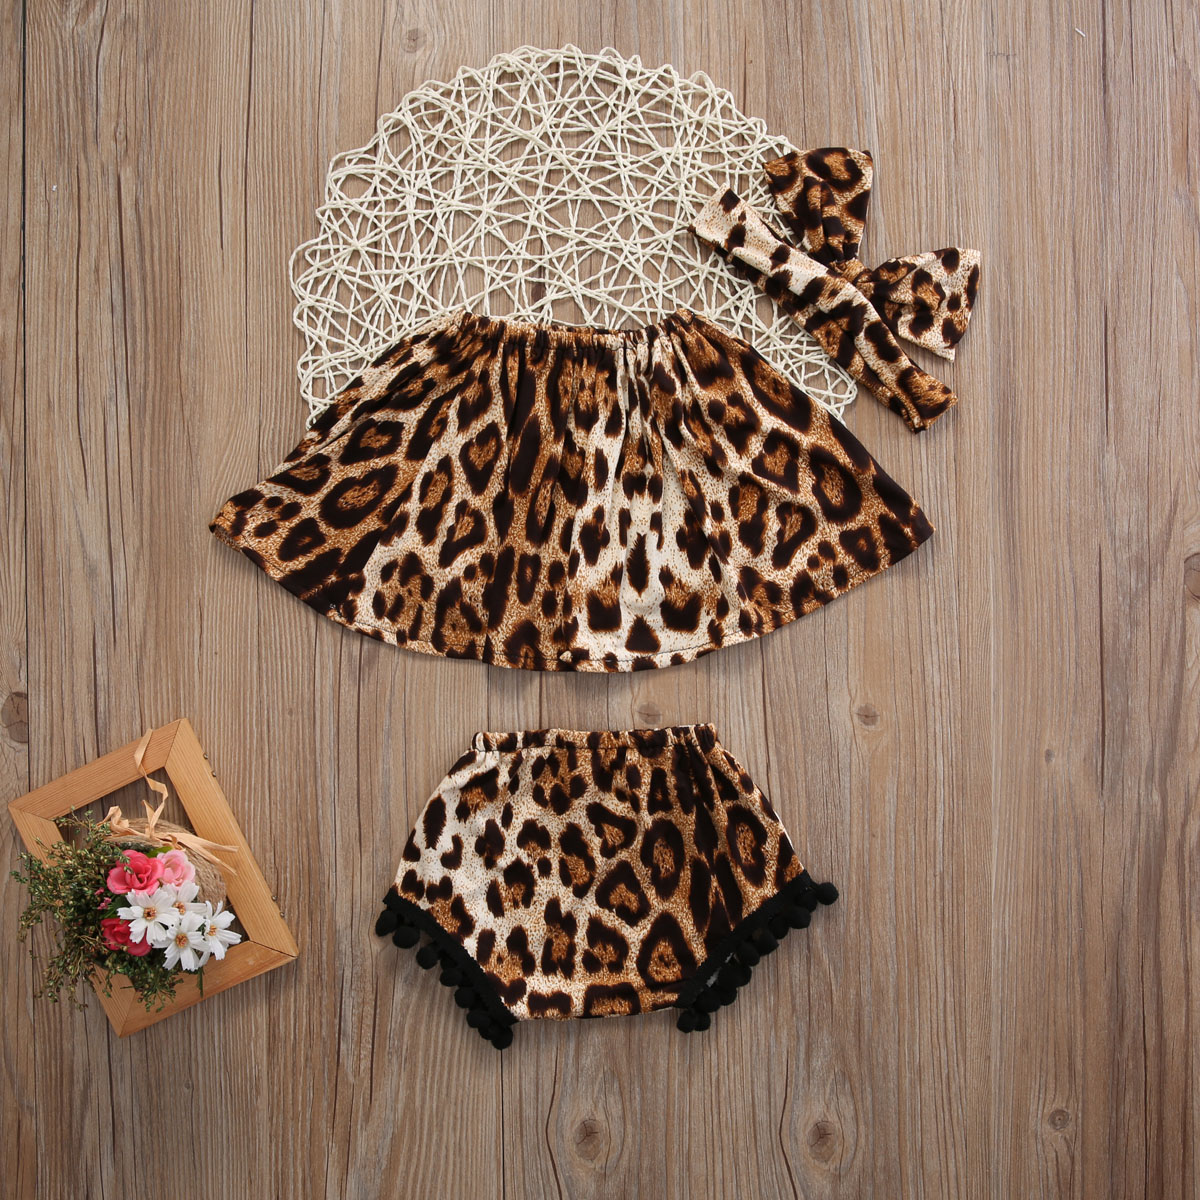 3Pcs Set Newborn Infant Baby Girl Clothes Off Shoulder Sleeveless Leopard Tops+Short Pants+Headband Baby Clothes Outfits 3pcs set cute newborn baby girl clothes 2017 worth the wait baby bodysuit romper ruffles tutu skirted shorts headband outfits